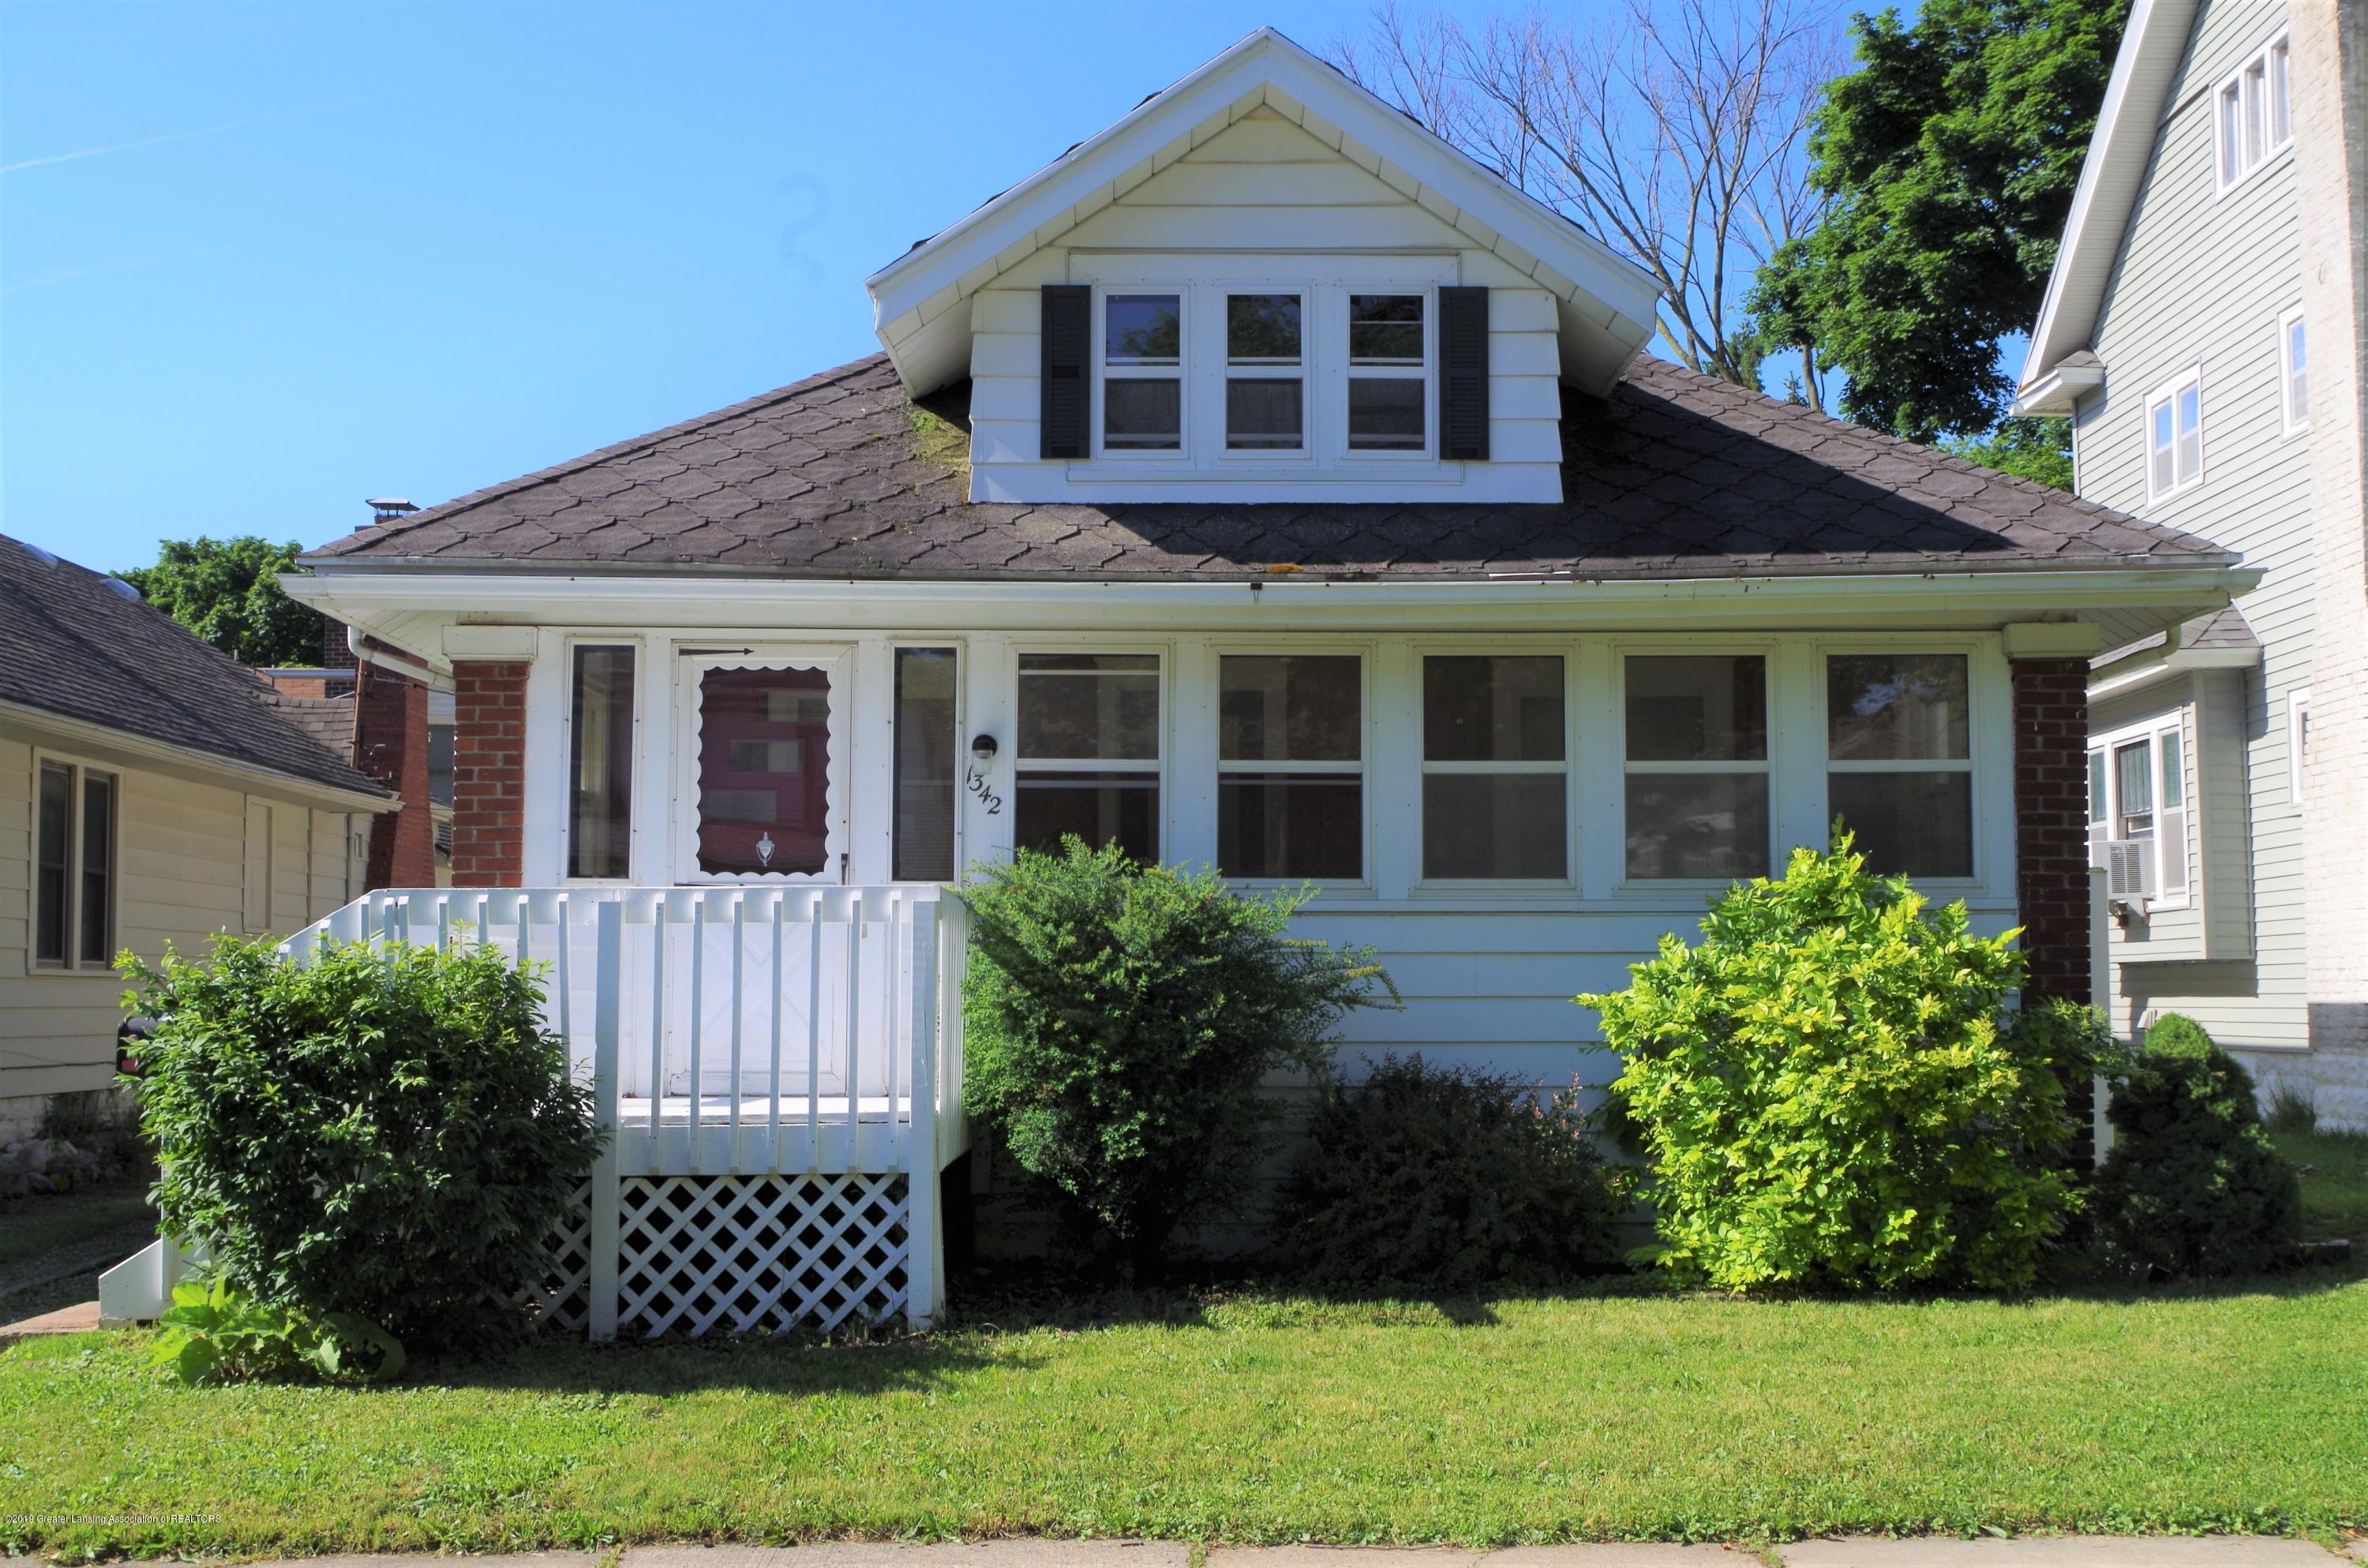 1342 Eureka St - Front View - 2